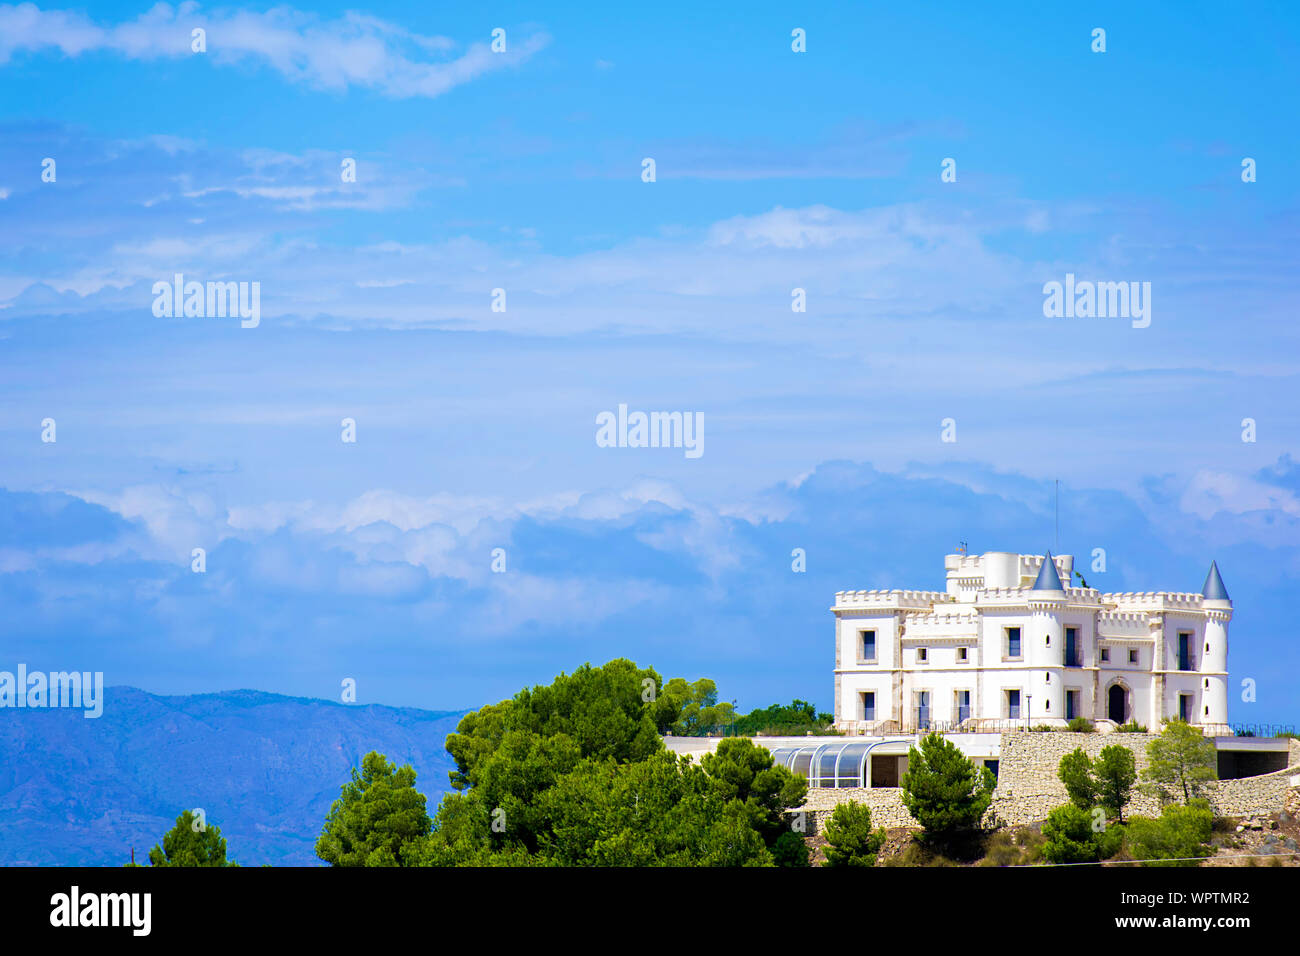 Ancient white castle located at the top of a mountain Stock Photo